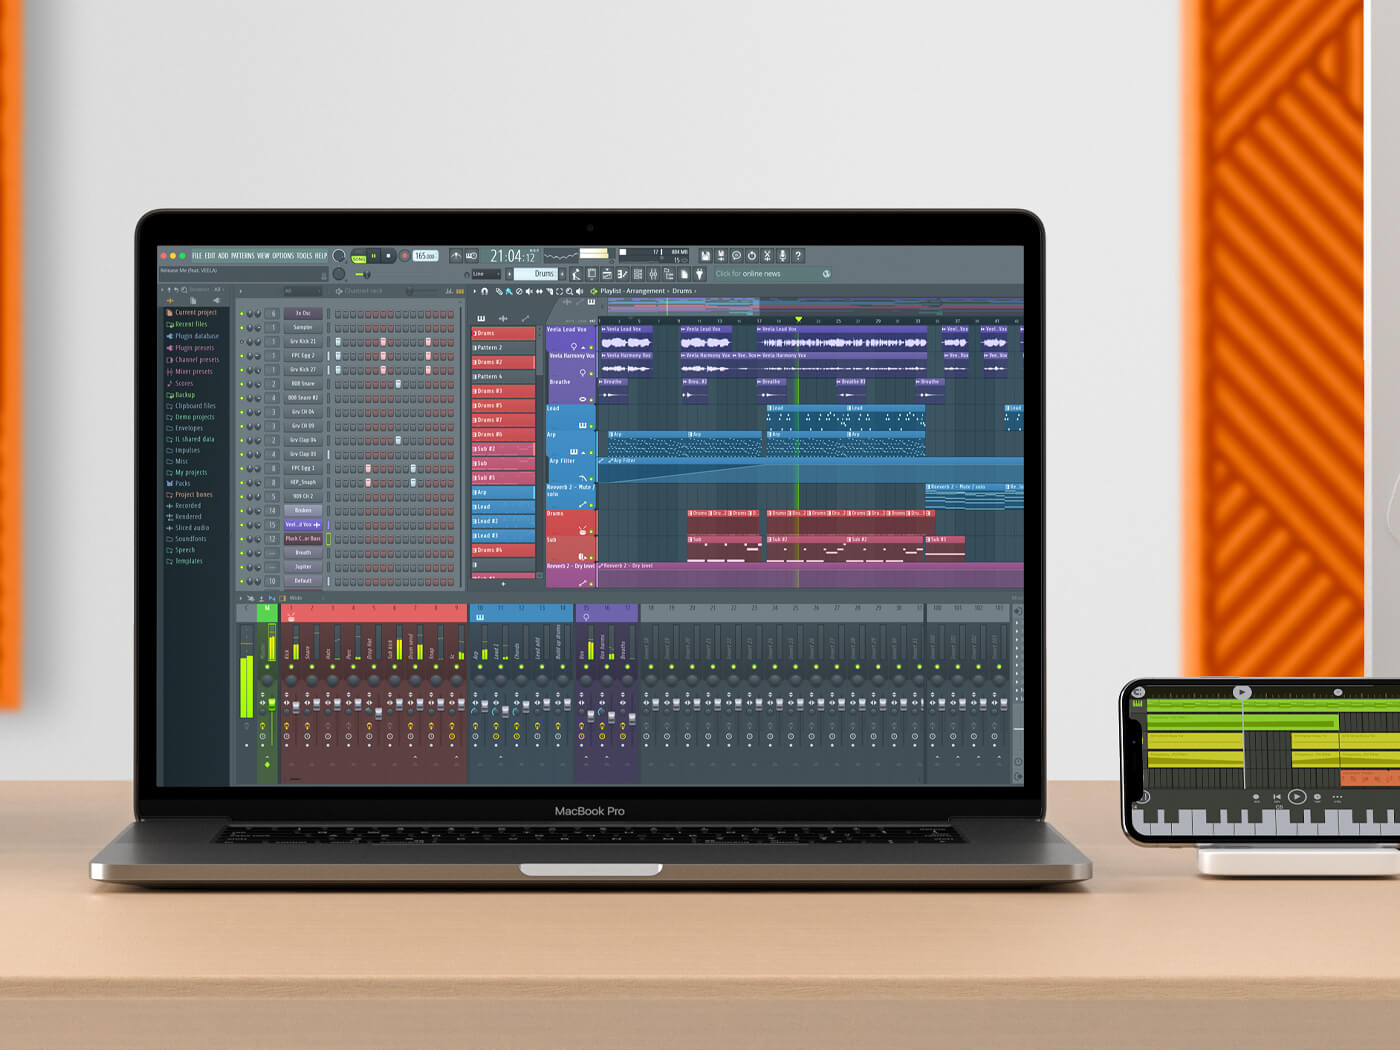 FL Studio's 20.7.3 update improves playlist workflow, batch exports and more | MusicTech